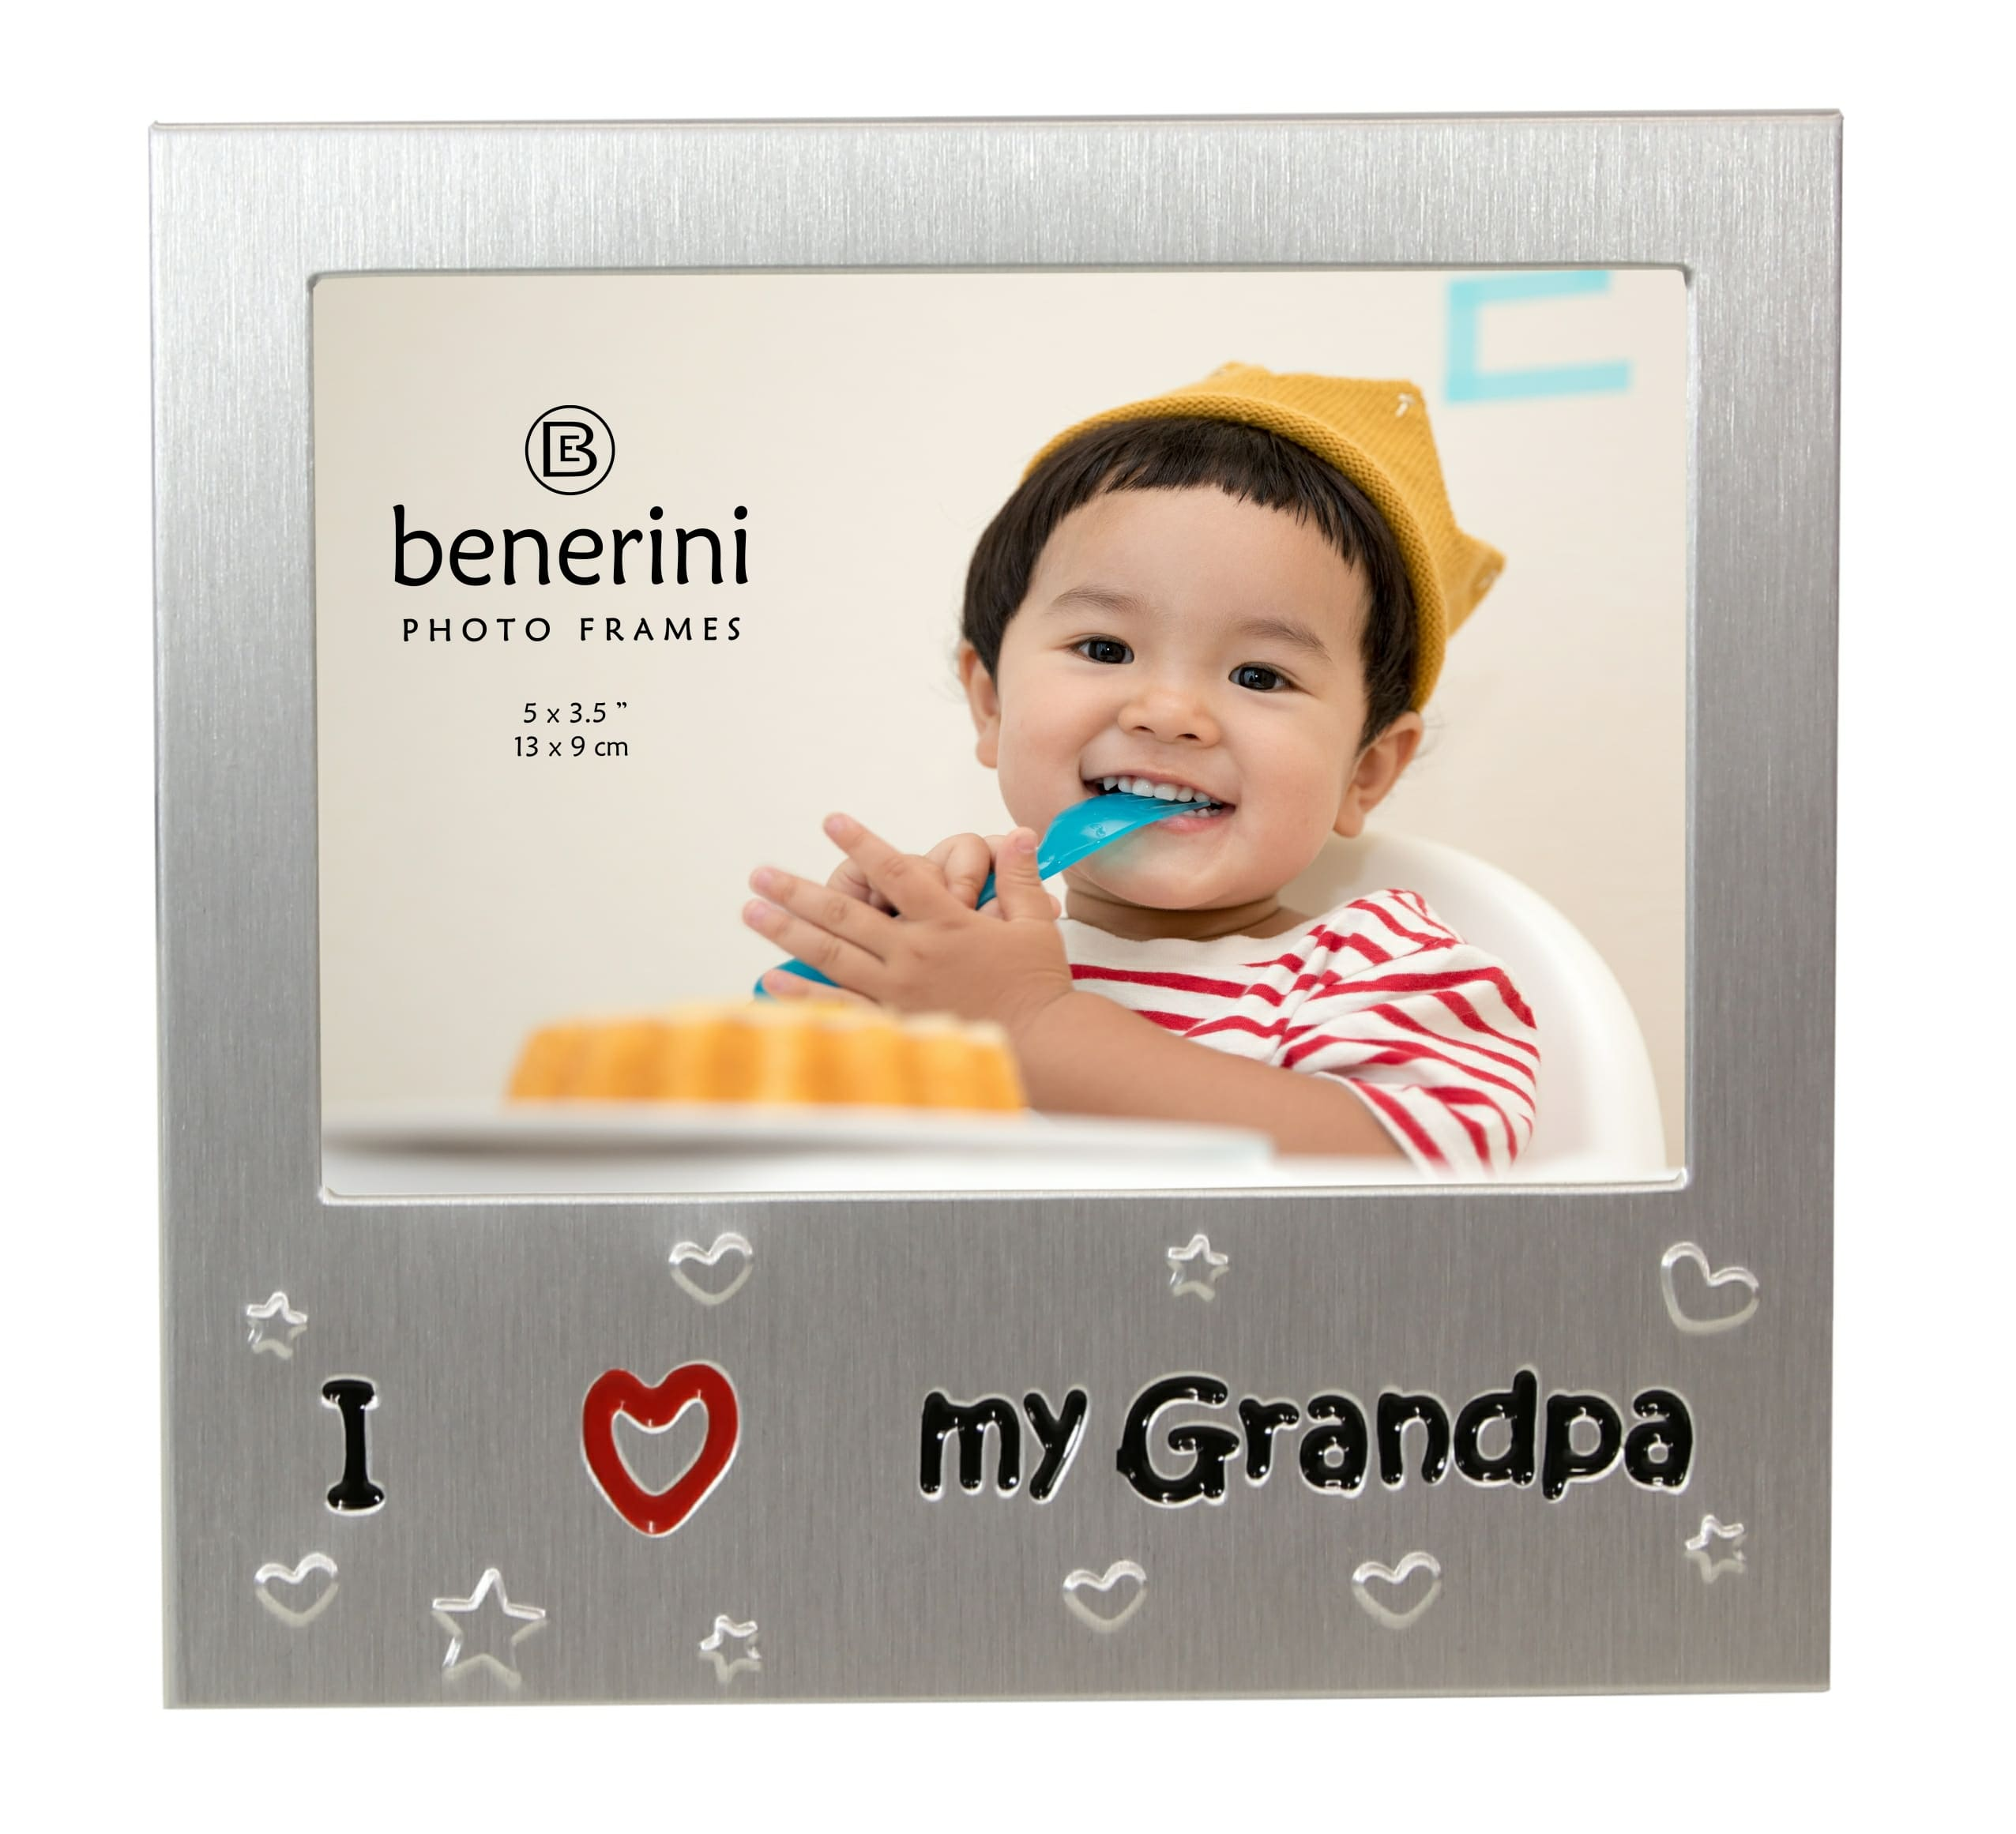 We Love Our Grandpa Picture Frame Present Idea Benerini